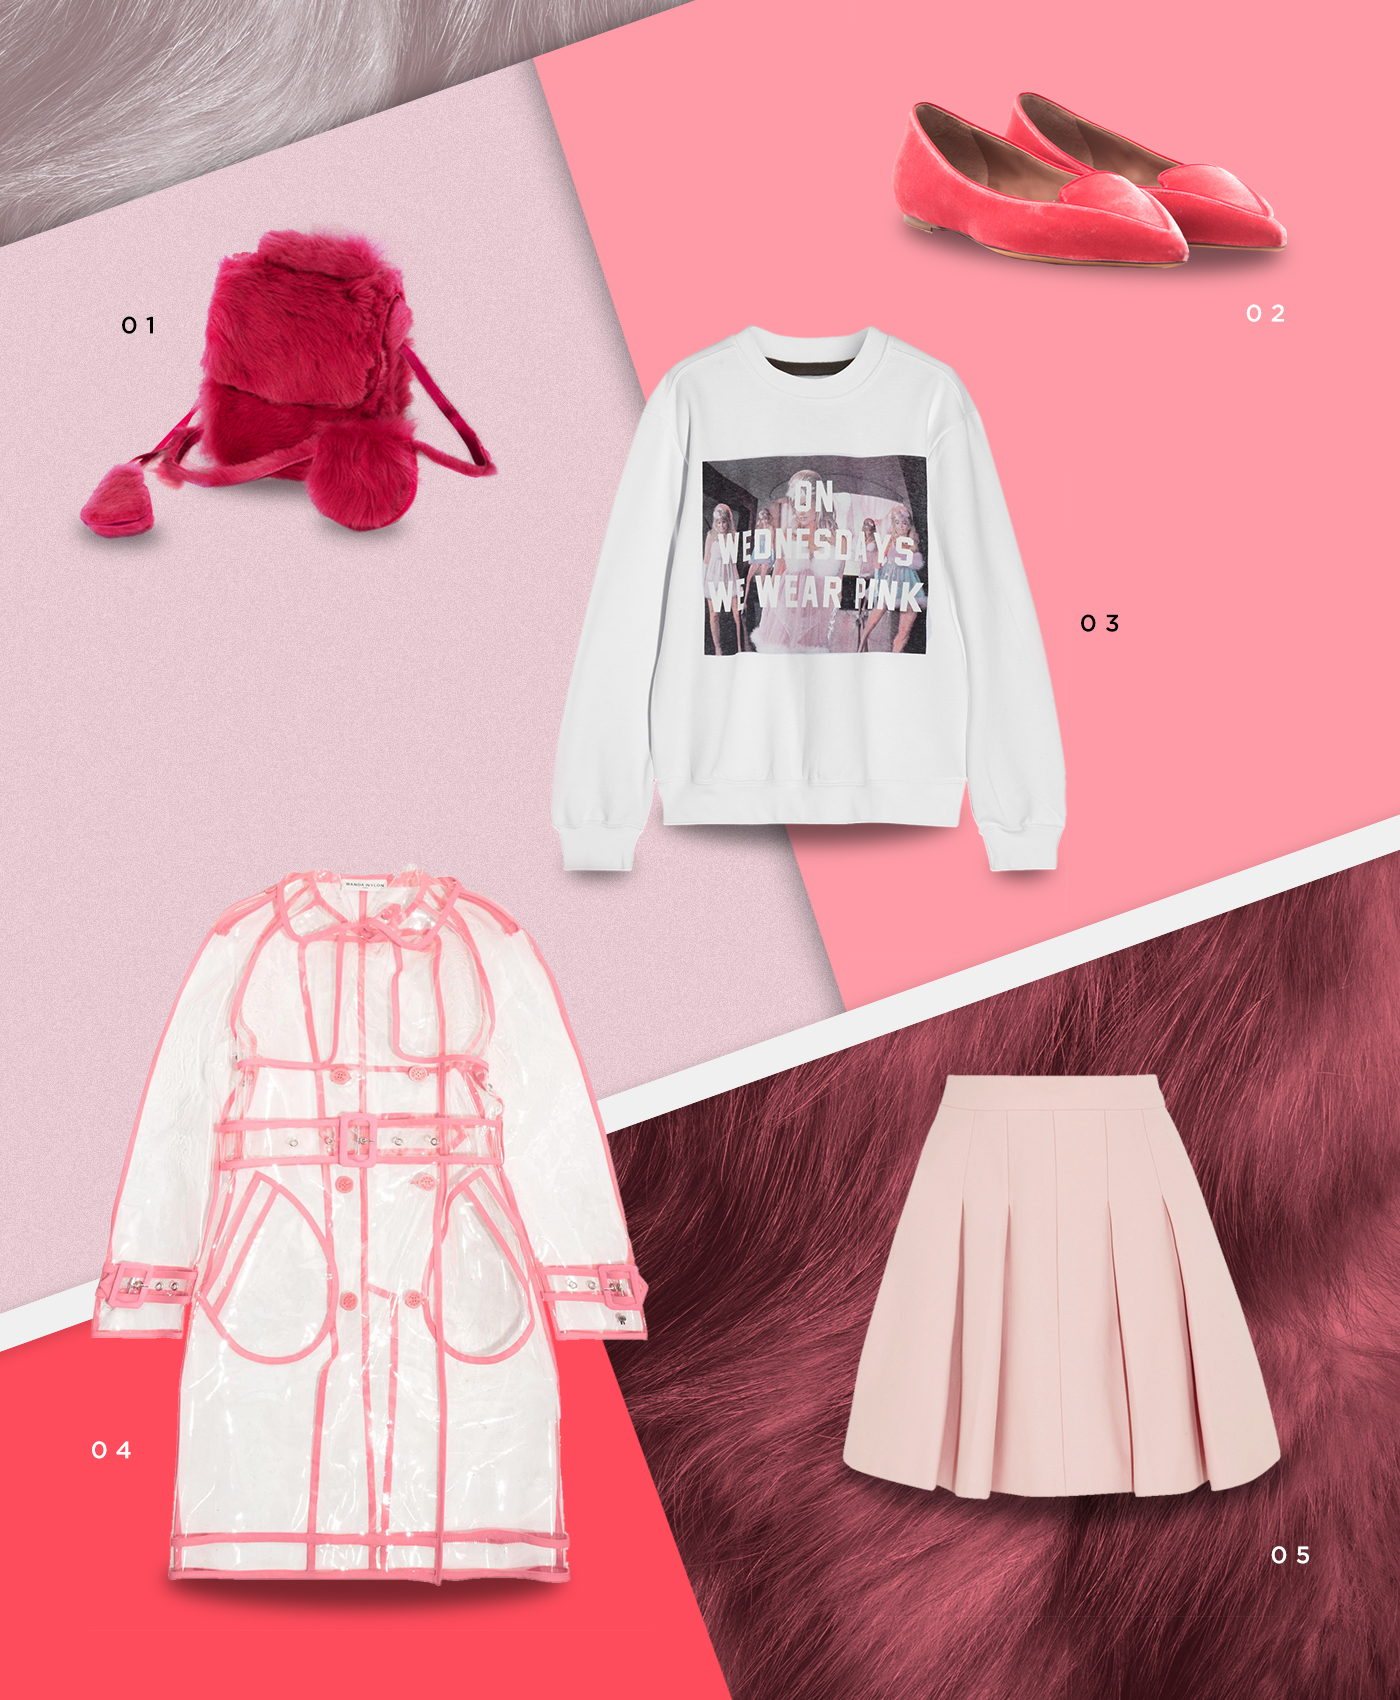 Maison-Mittweg-Looks-4-Ways-To-Wear-Pink-For-Breast-Cancer-Awareness